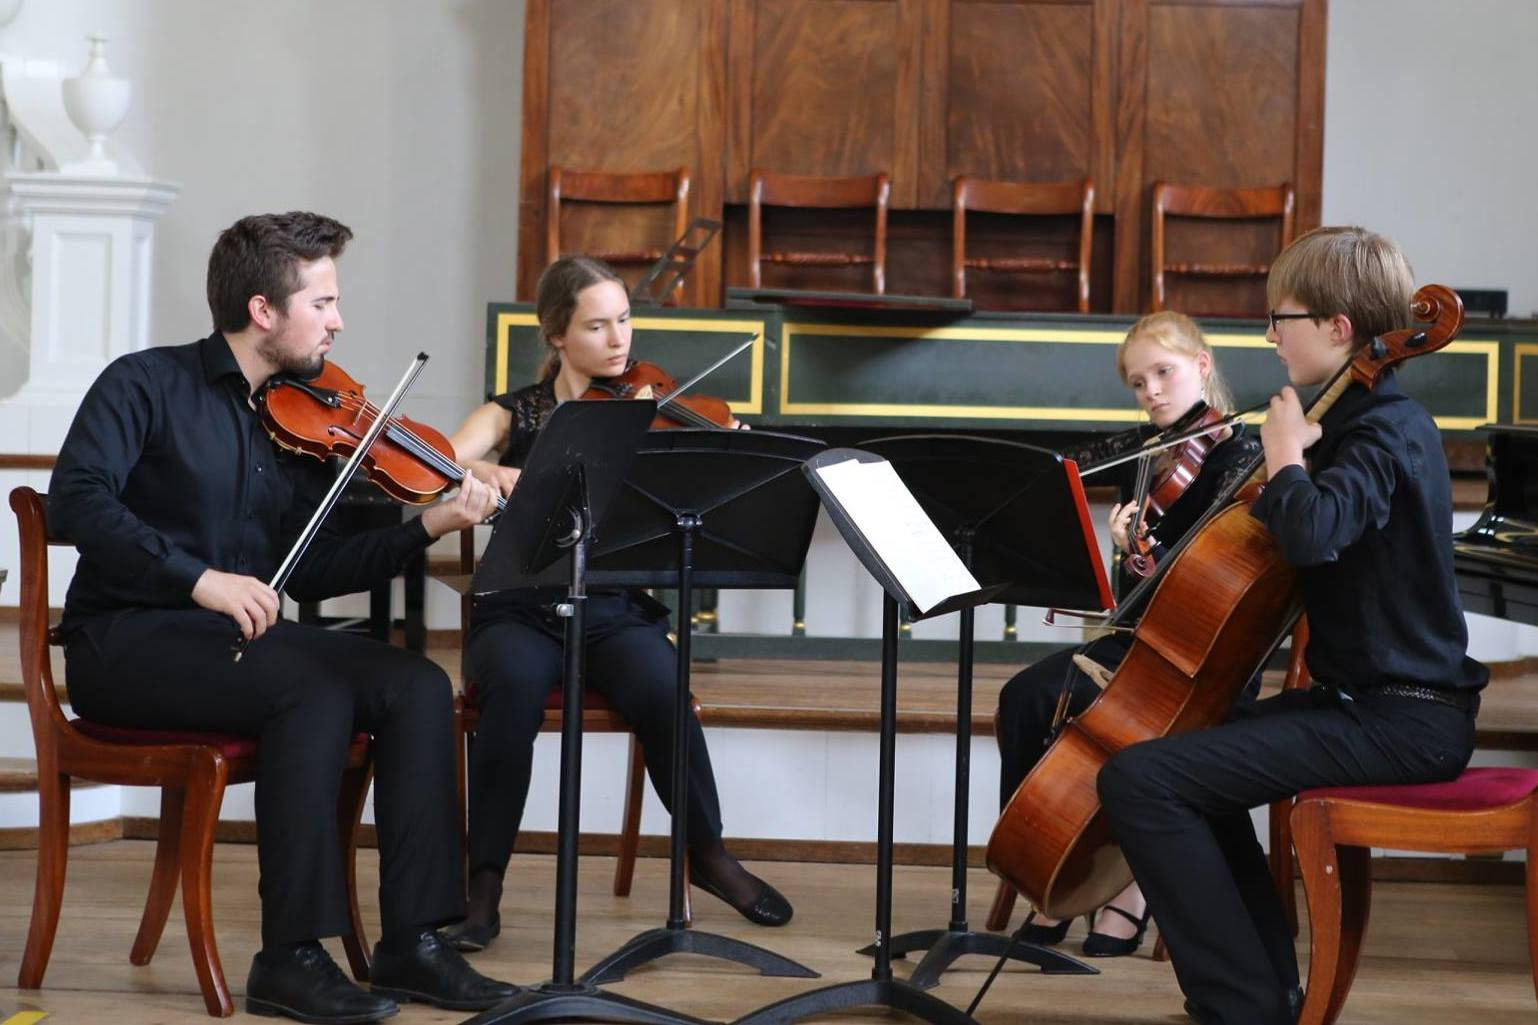 Chamber Music concert at the Ingenium Academy Music Summer Course